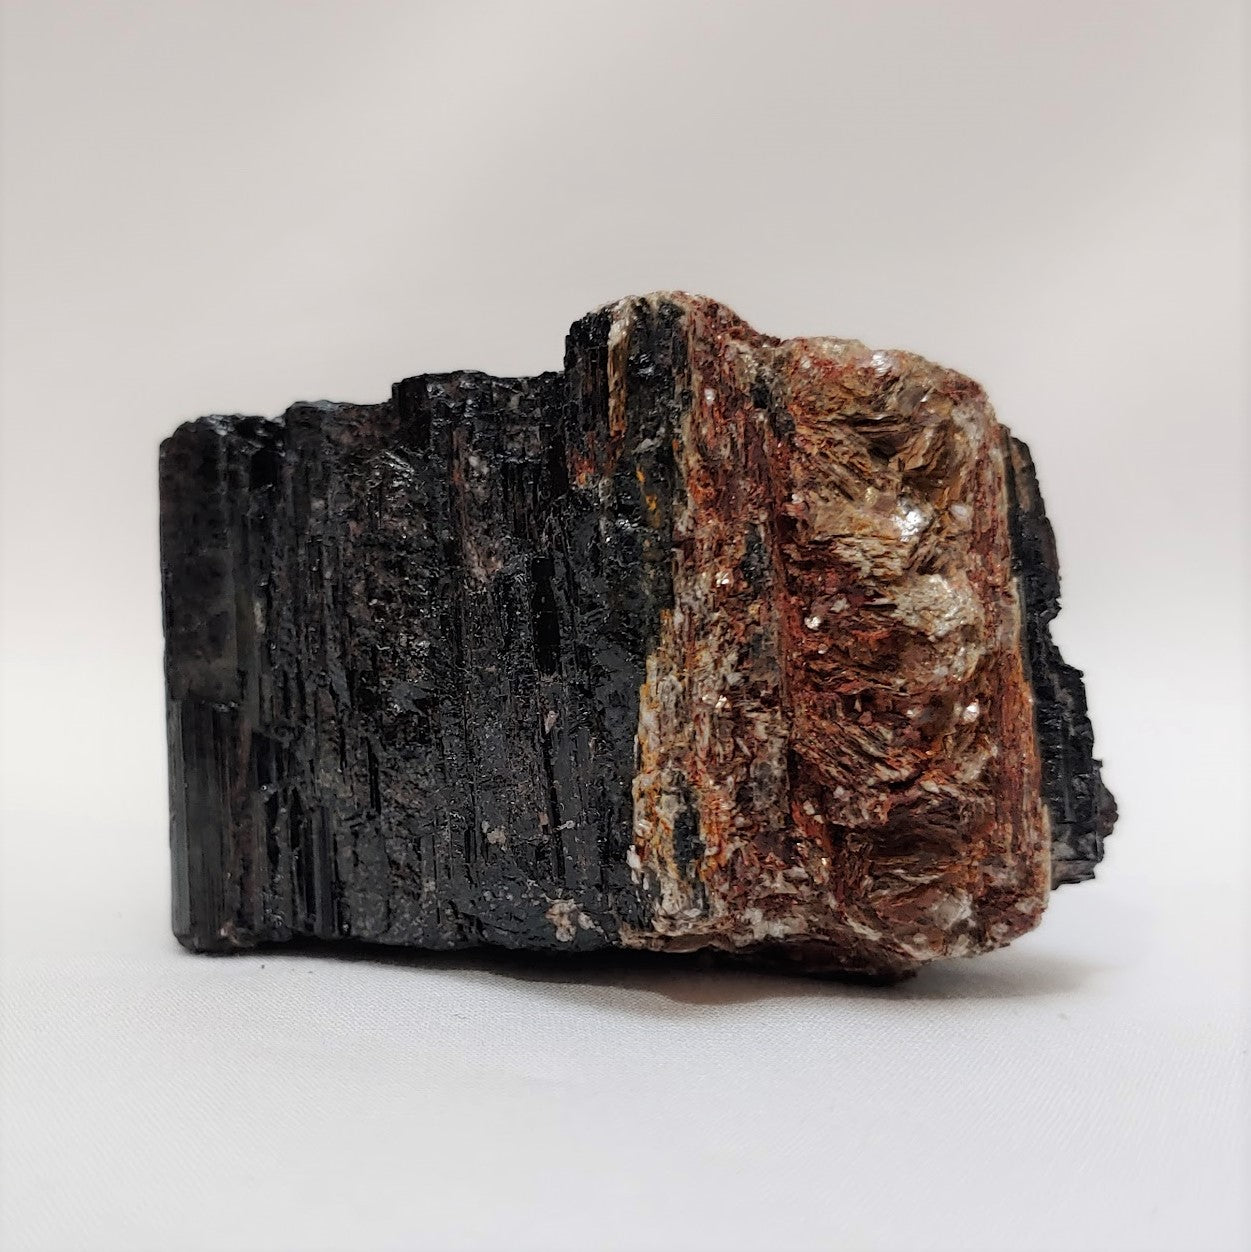 Black Tournaline / Pyrite inclusion